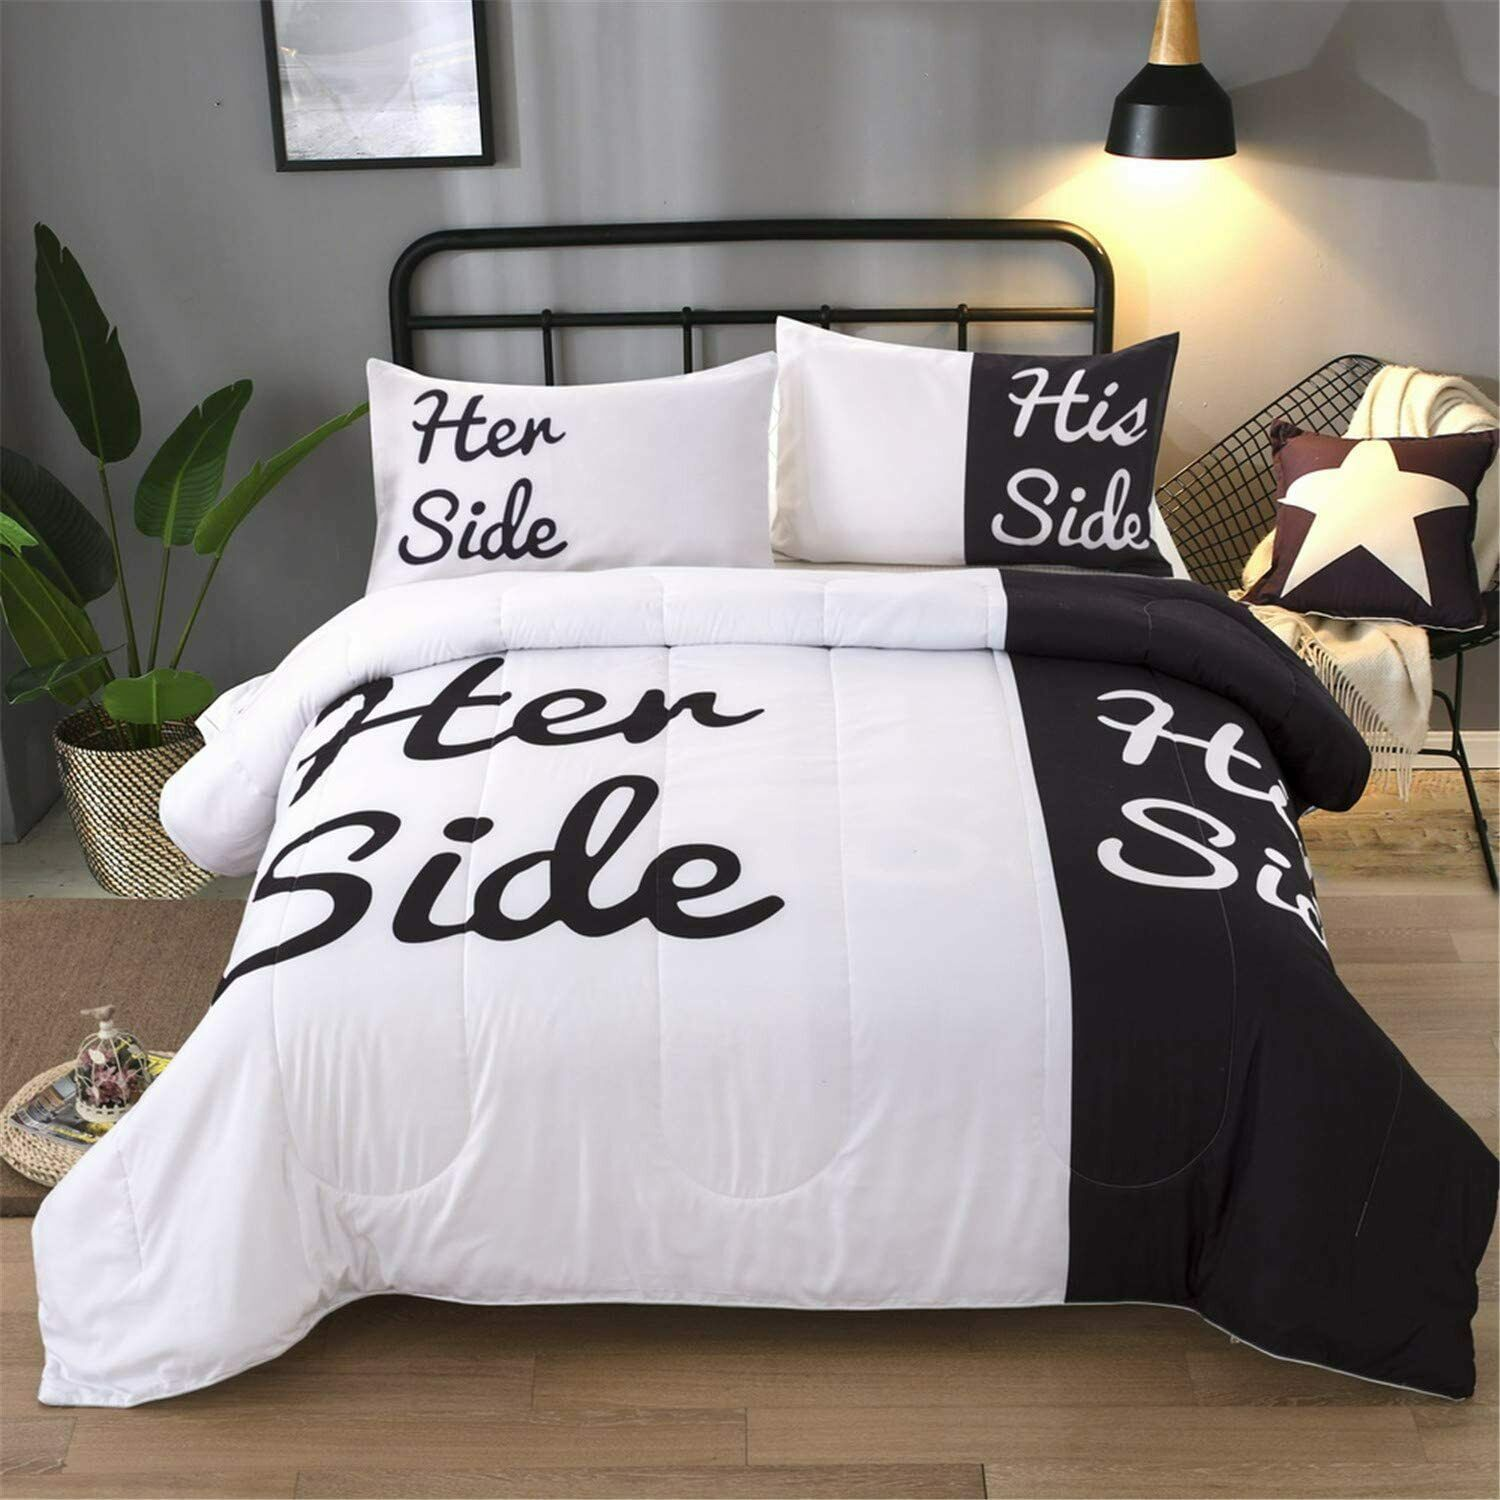 Black And White Comforter Set Queen Her Side And His Side Printed Bedding Solid For Sale Online Ebay